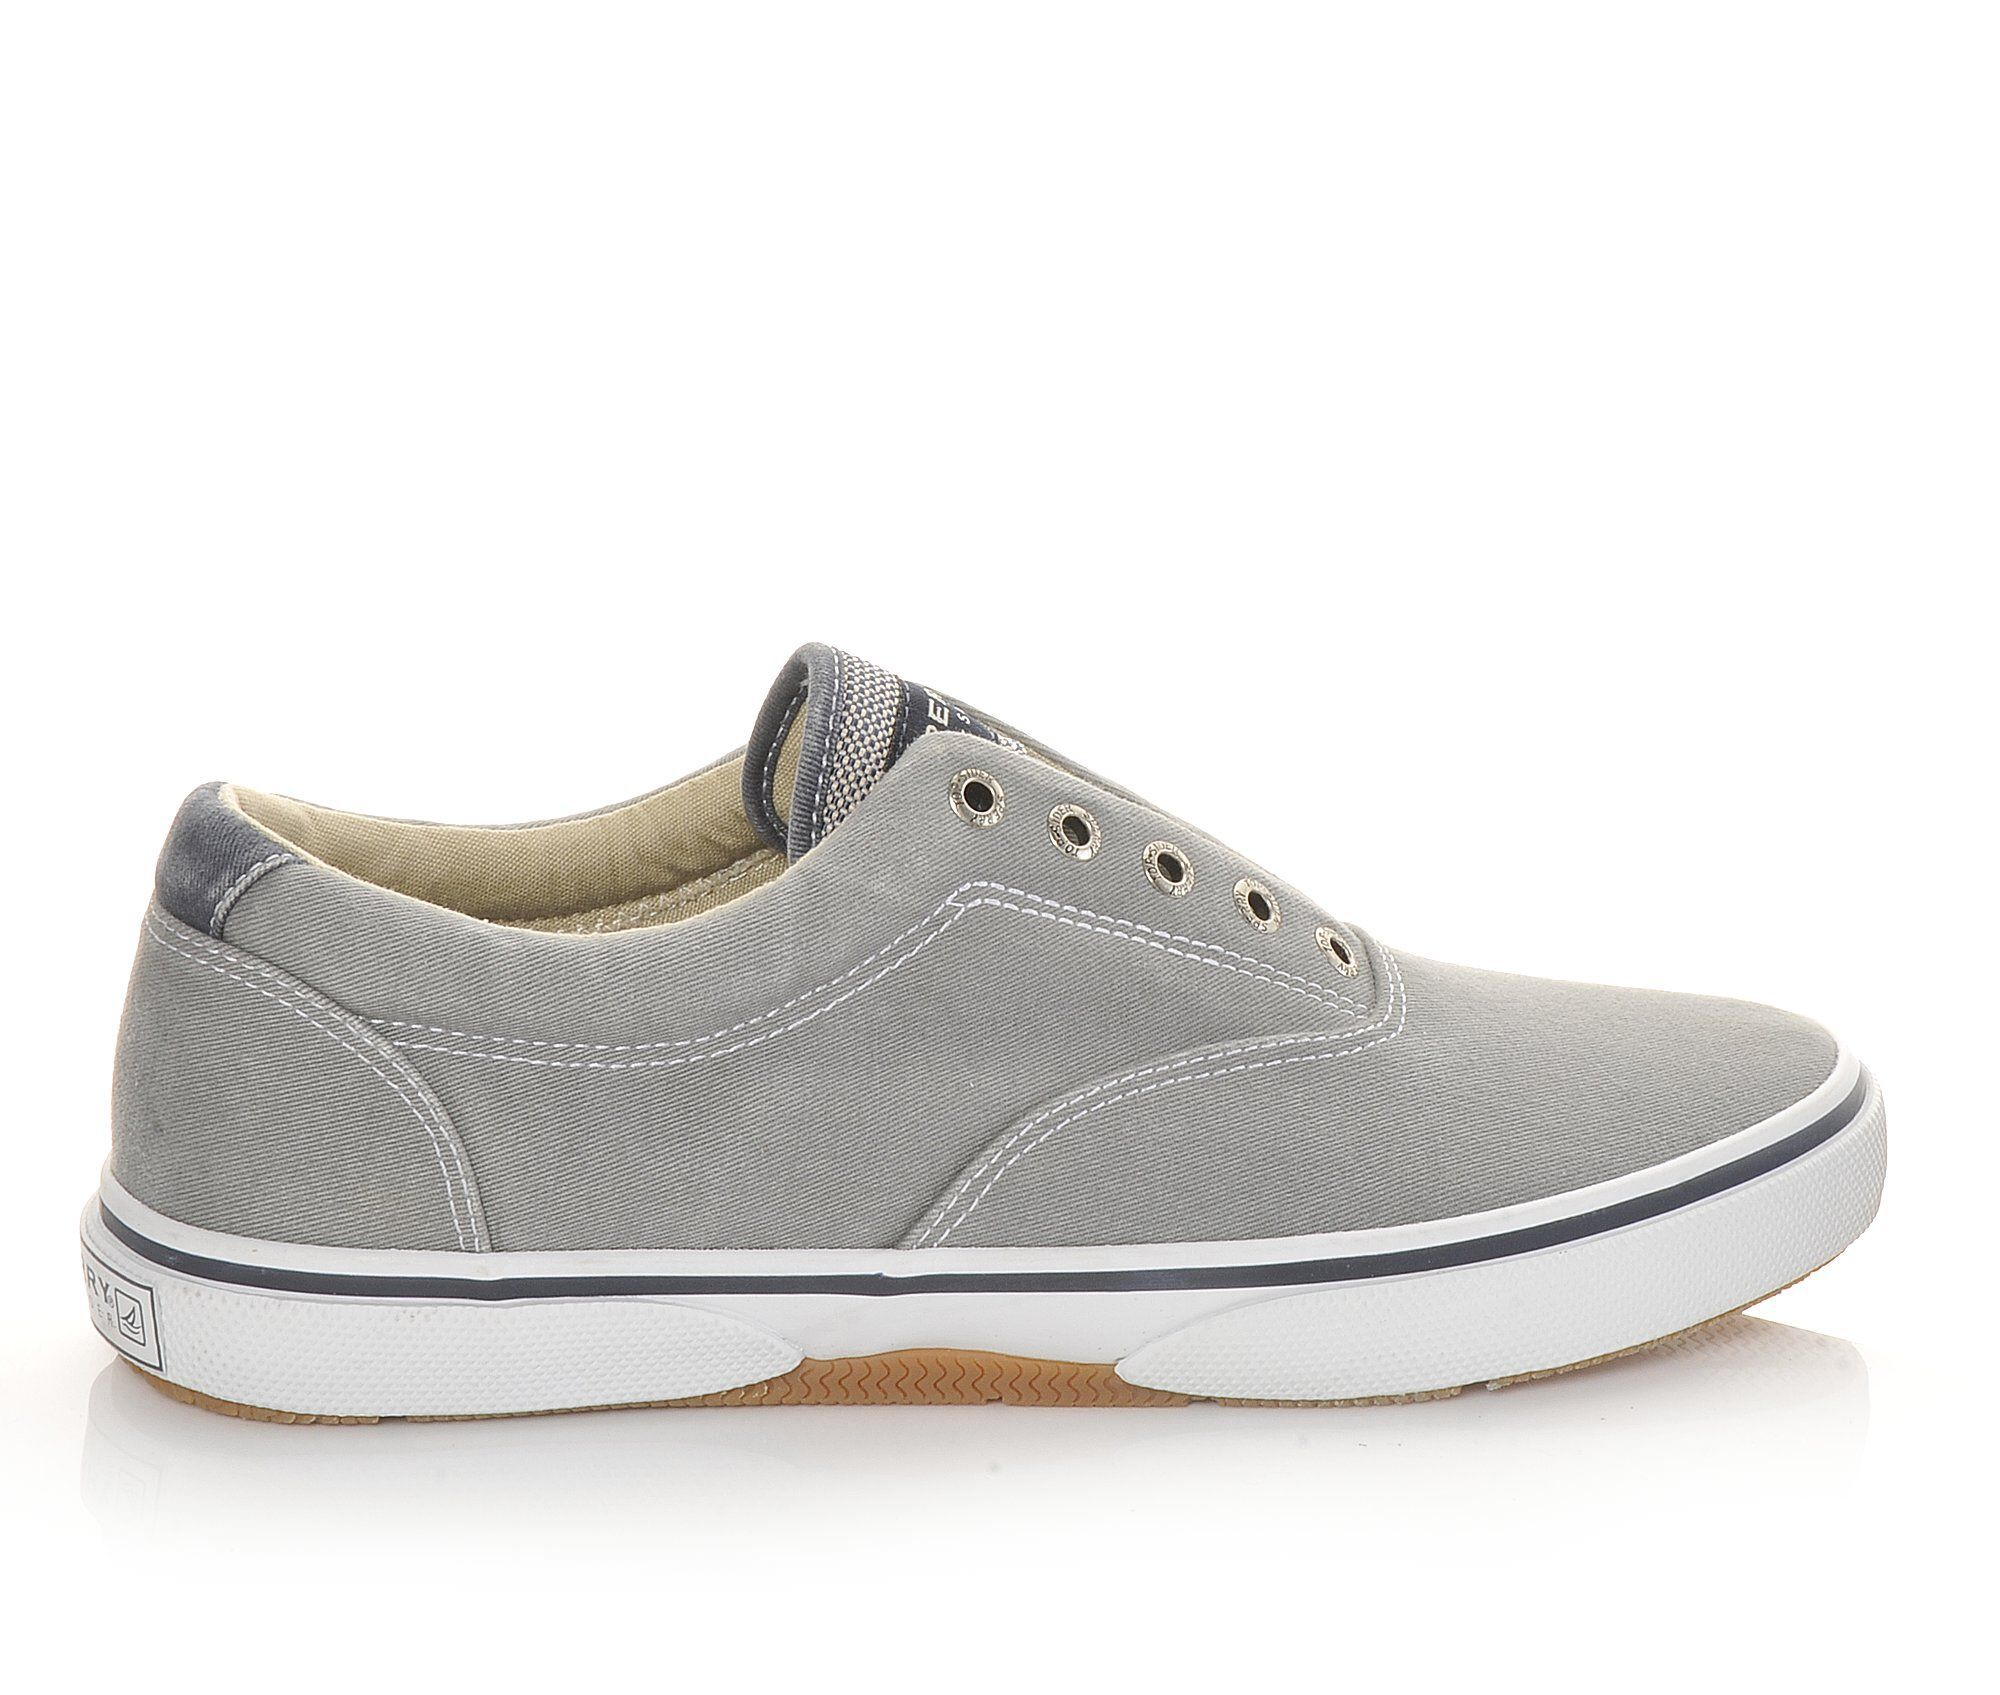 Find Comfortable Men's Sperry Halyard Laceless Casual Shoes Ash Grey